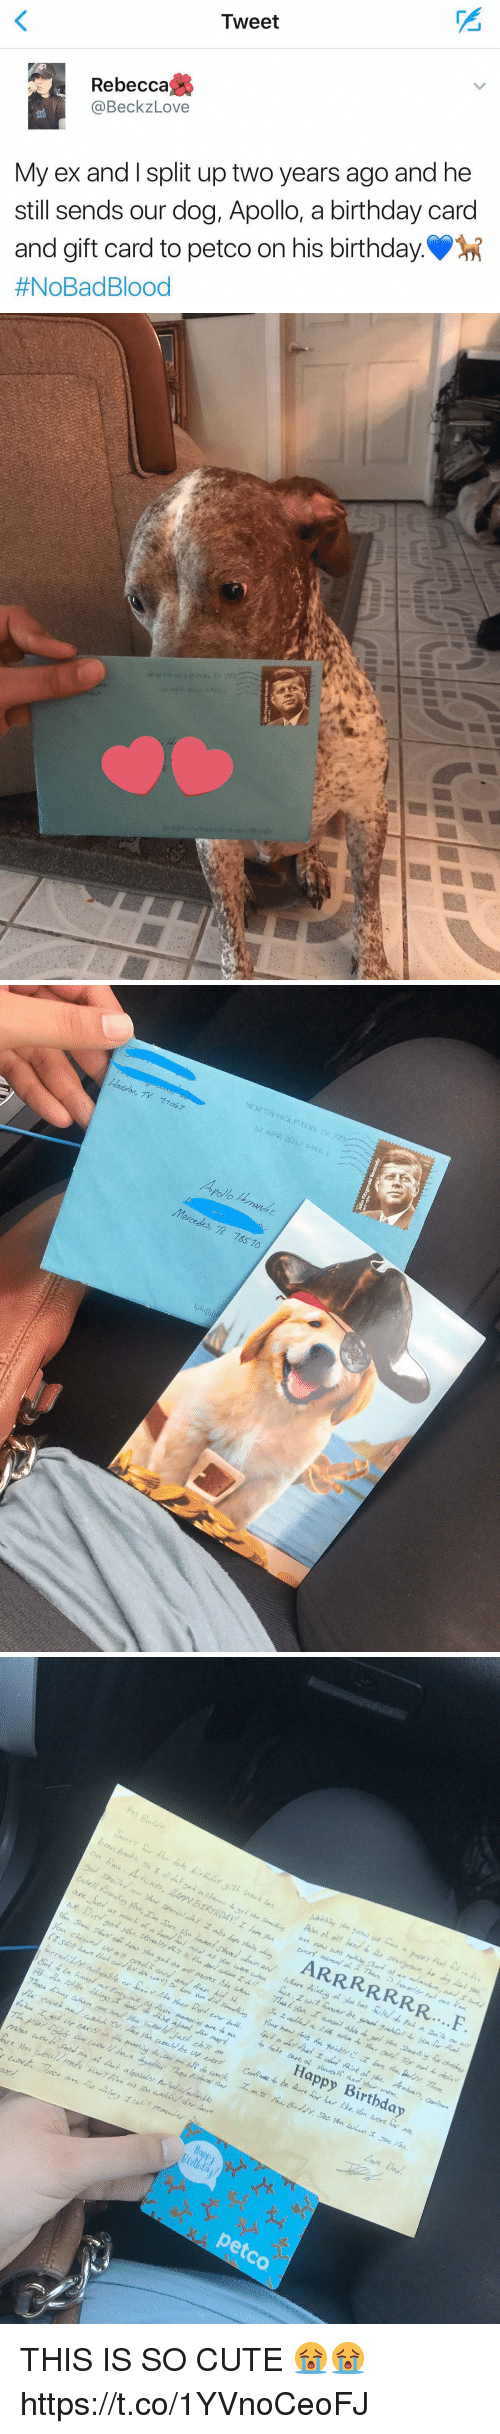 "Birthday, Cute, and Love: Tweet  Rebecca  @Beckz Love  My ex and I split up two years ago and he  still sends our dog, Apollo, a birthday card  and gift card to petco on his birthday  #NoBad Blood   Fangerald Kennedy   Apollo  Mercedes, 785 10   On lieu Avuan, LArpy BERT DAY!工hare洳A eAAd  are Just  ybu, US a)Iy M7 ps tha Aw/ cん ez.hen mueZuiR goru er be gae, 3-und-o yourr Hal  4m> 》hat ""gatan wifne-ver Me a체 7hales, .ZuasnV4bledom,éu .Decay-Granky  wmyonofxcaa/are/Aun hid从品ェa/¼ノ晓IA eWadoNm/card 7,ynsidon inv,  ineree以/y Achable or few/NaNmd rPrr / e-w ea/oday-Aad d., ant d id. Aalena  Arakay's, Carmen  Happy Birthday  Caud and amich TV ~儿e aeukWe w e-cry hawide hare *r he/ Zke cán core w me  エ28t,ss /ai,syLa./X-De y&a ヱNk¼u.  fee Abu乙eeee1/ m/e zeeryAmarGu amhhe/dwave  CANdi- 77ay art-AL ~,,ひゴ ,ツノemmee  Berldar  petco  r THIS IS SO CUTE 😭😭 https://t.co/1YVnoCeoFJ"